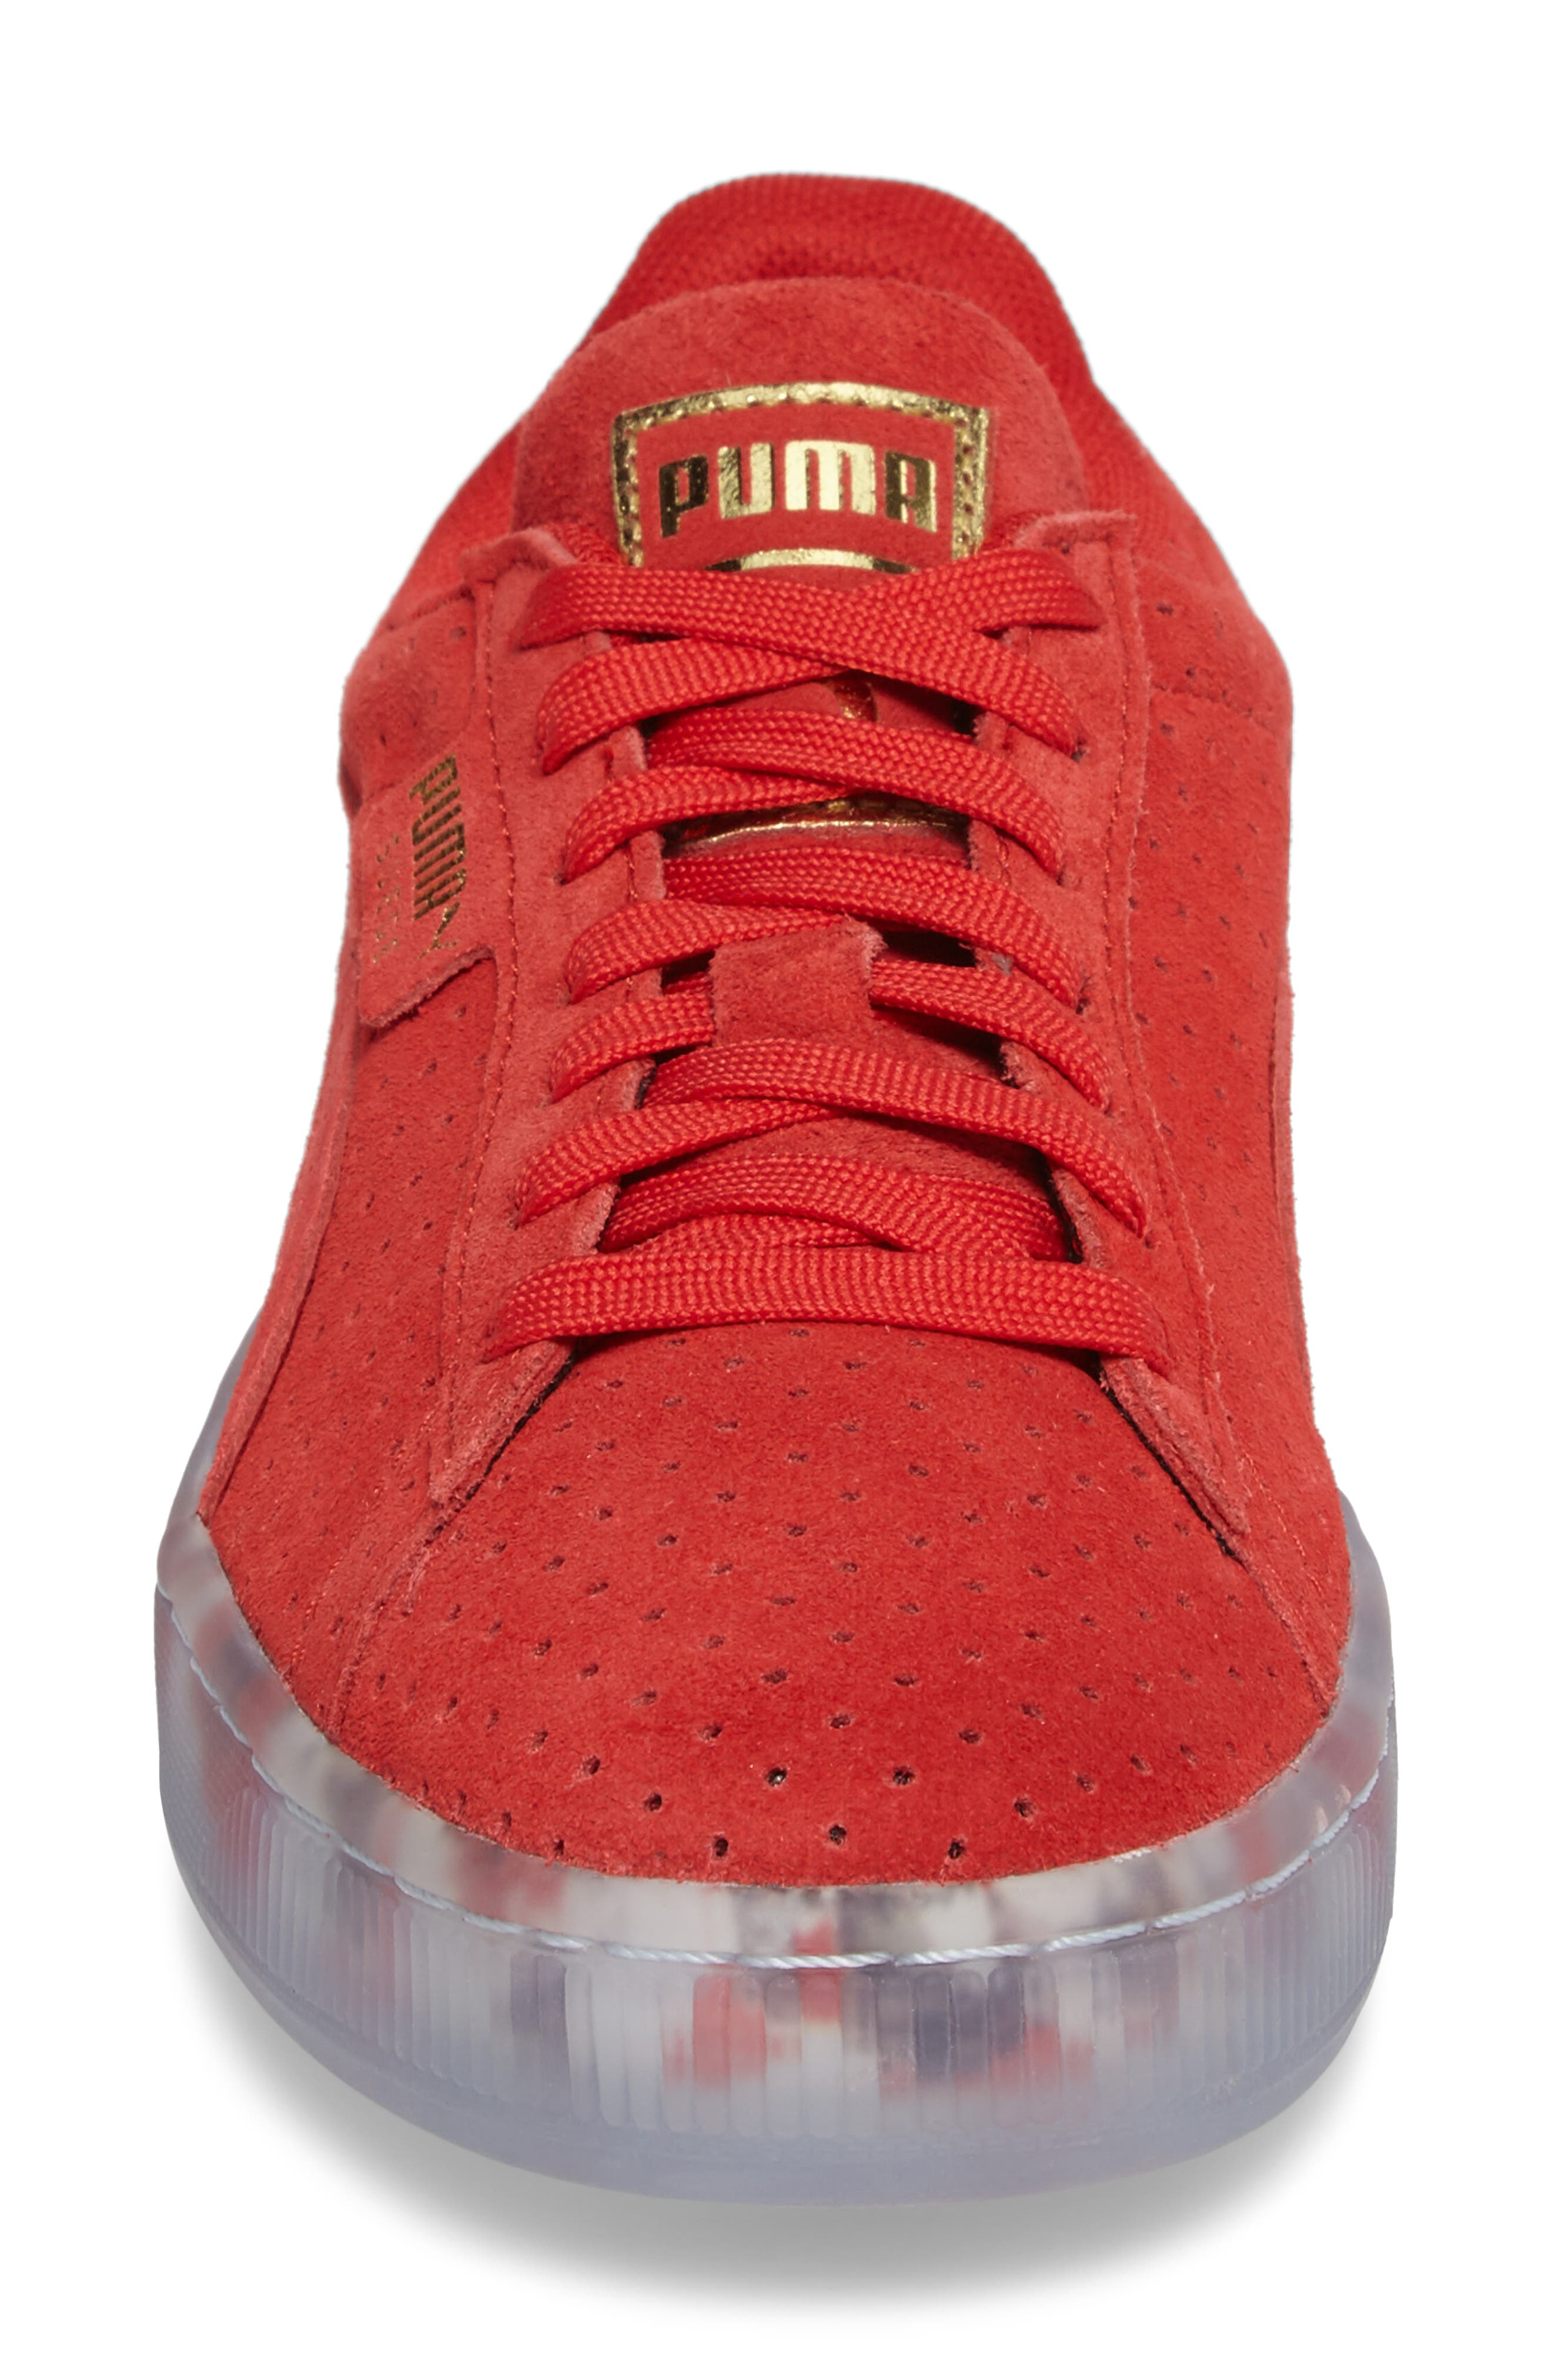 Suede Classic Perforated Sneaker,                             Alternate thumbnail 4, color,                             High Risk Red/ Puma White